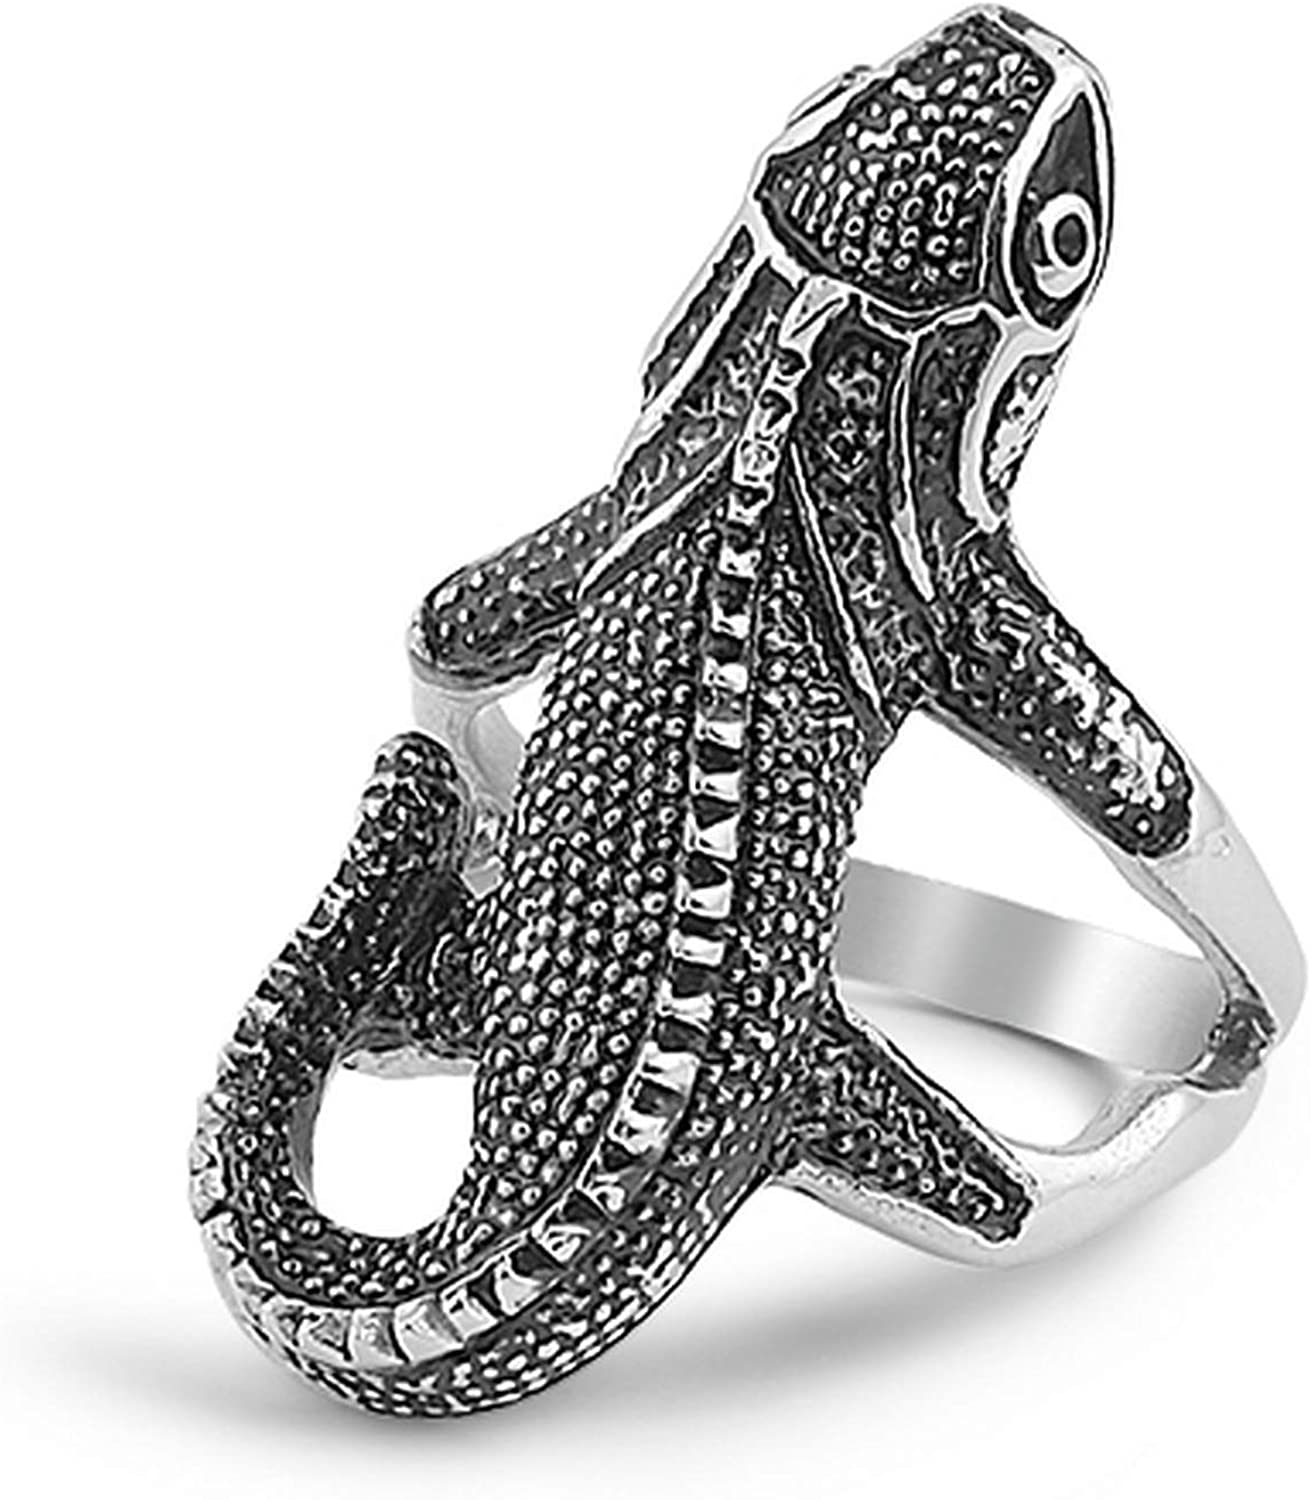 JewelryVolt Stainless Quantity limited Steel Animals Max 41% OFF Casted Ring